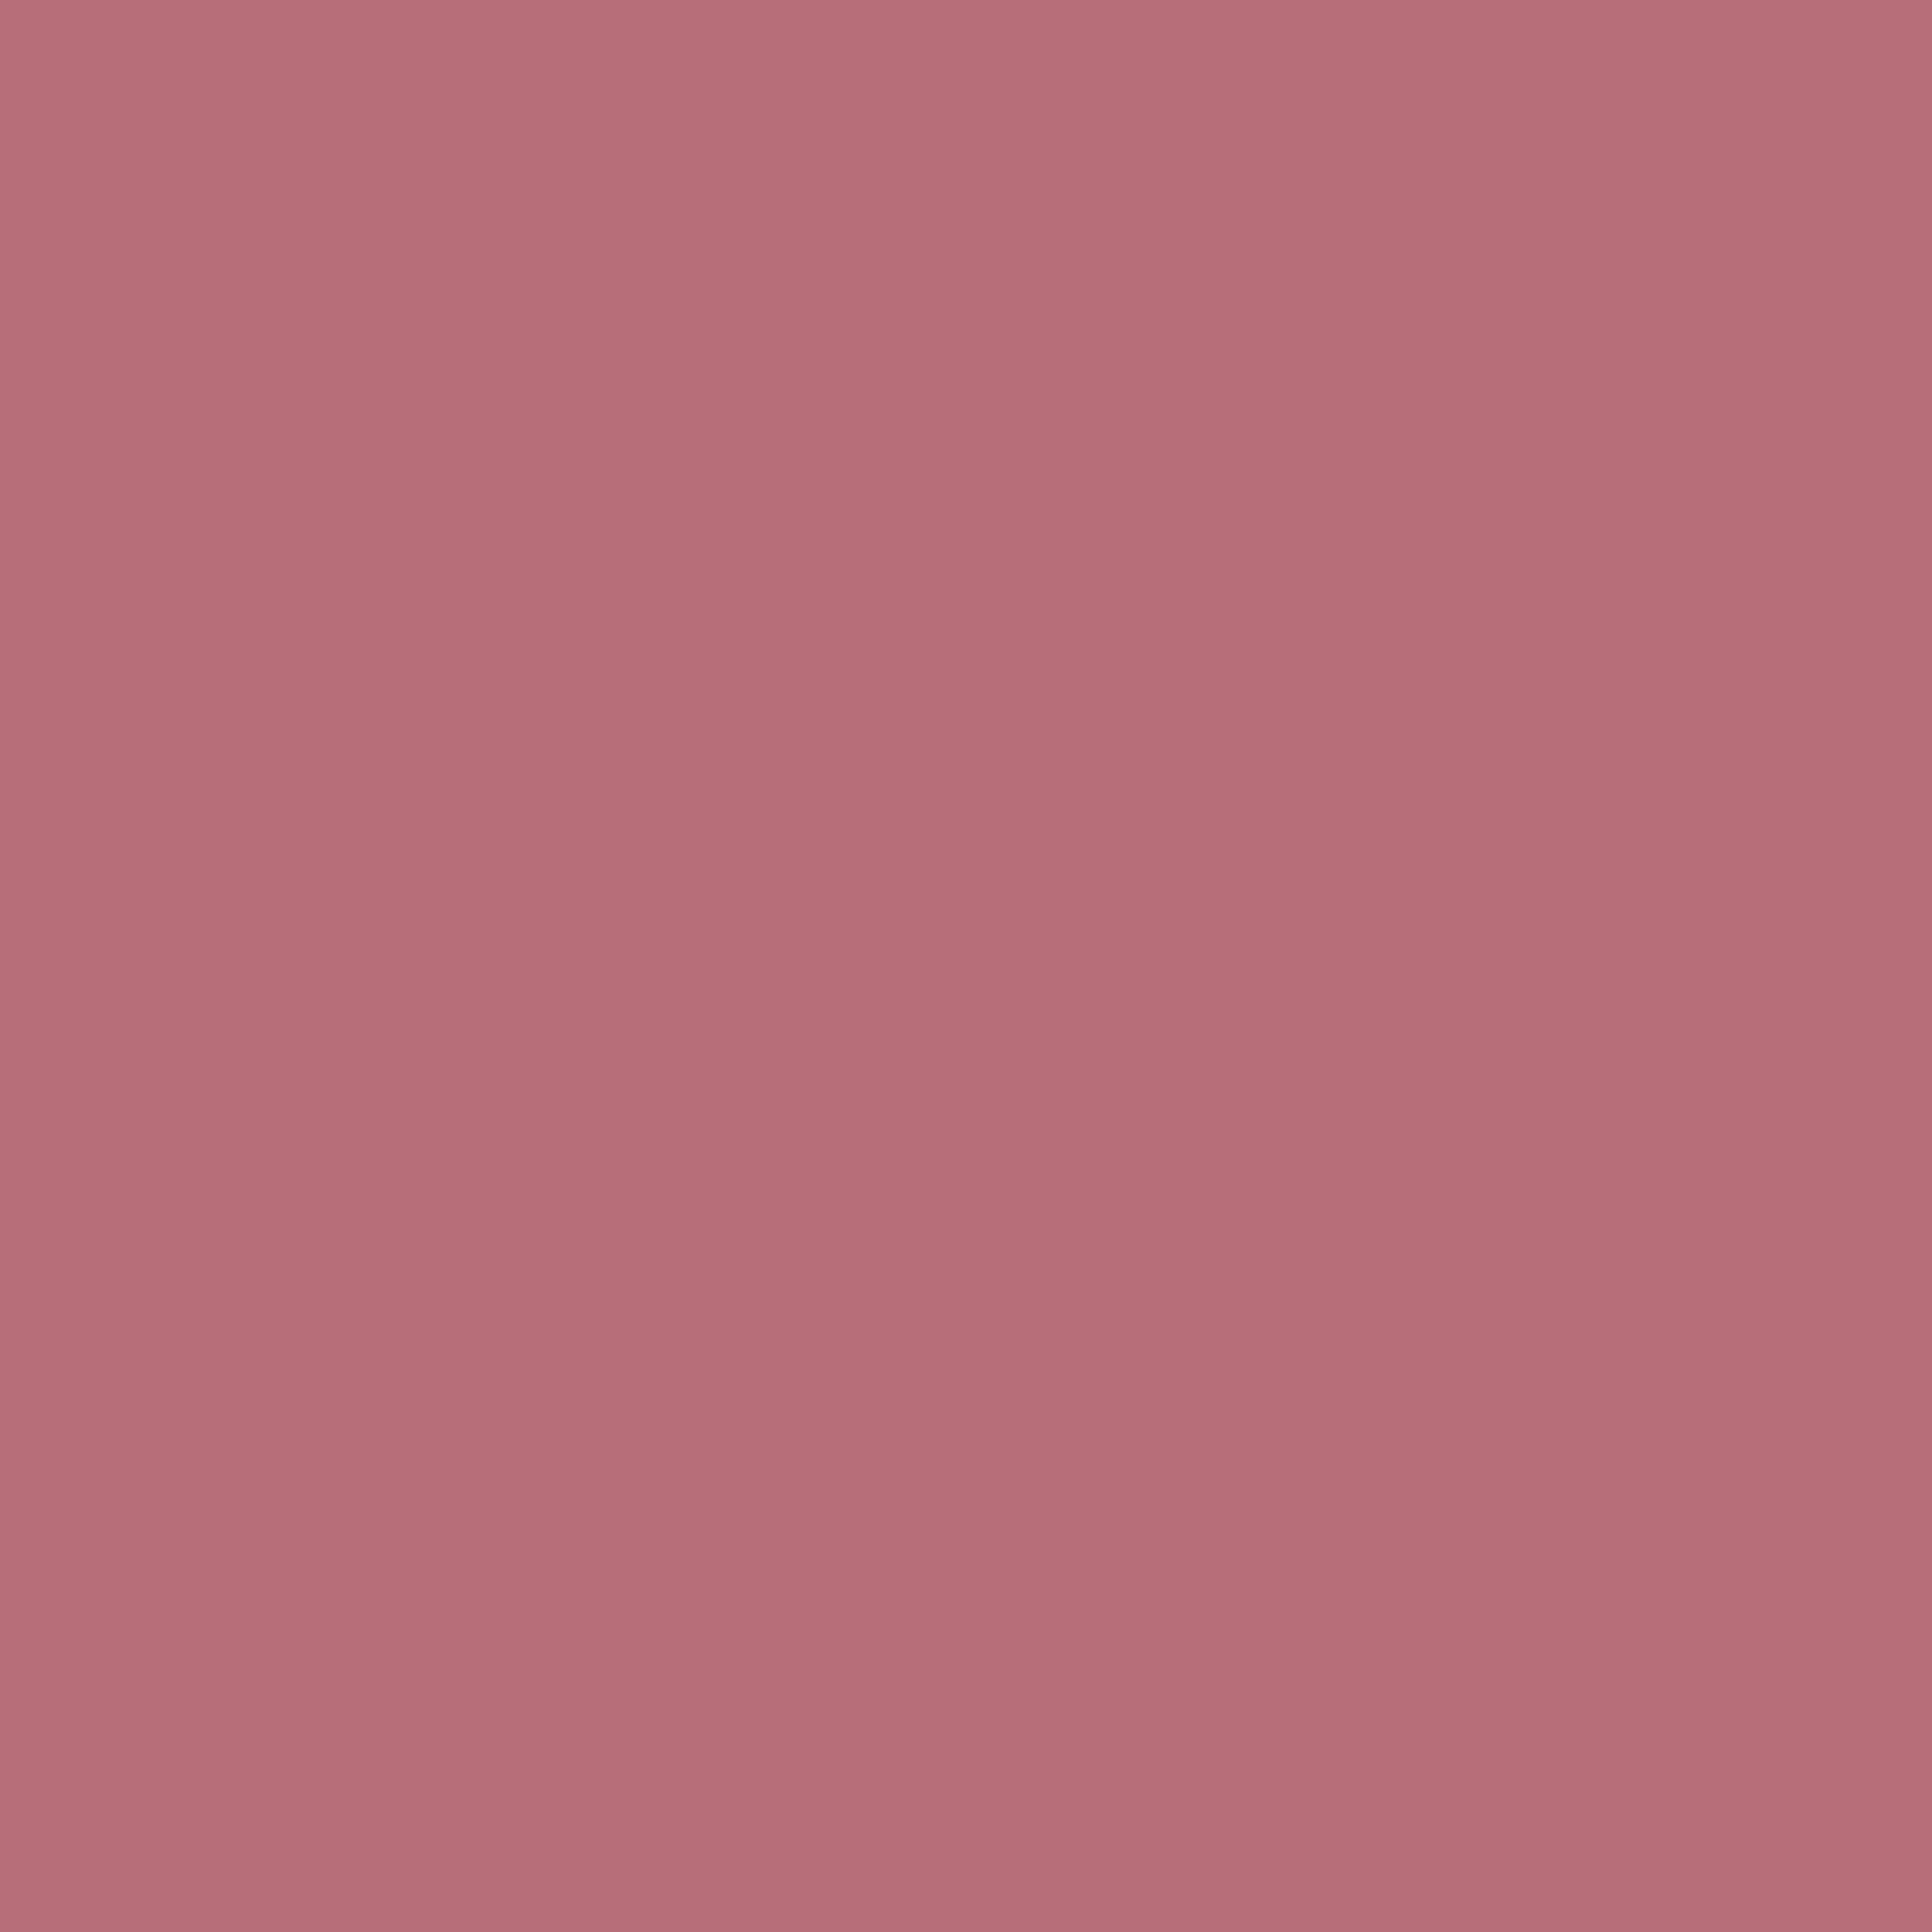 2732x2732 Rose Gold Solid Color Background